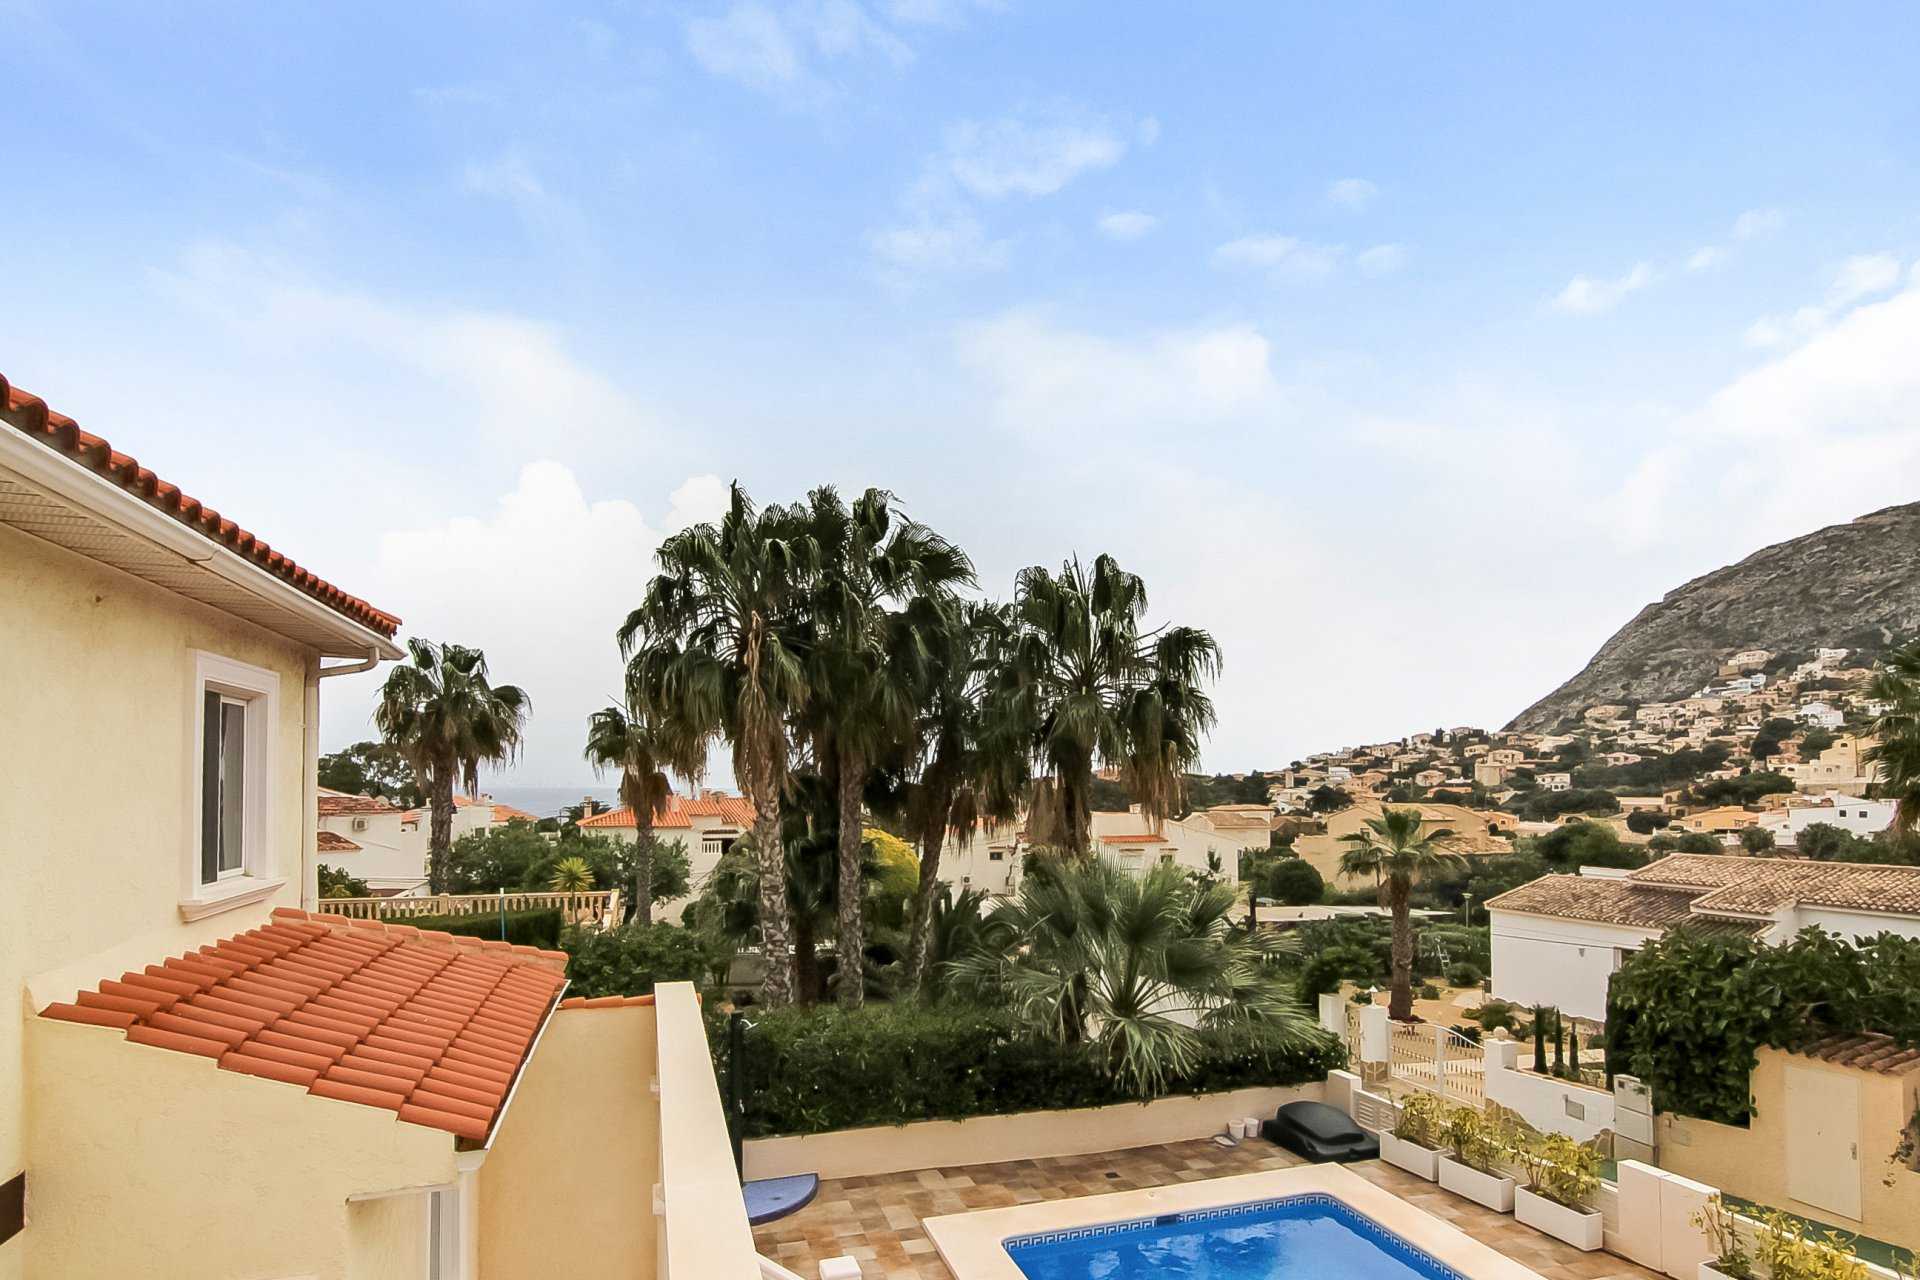 7-bedroom villa in Calpe